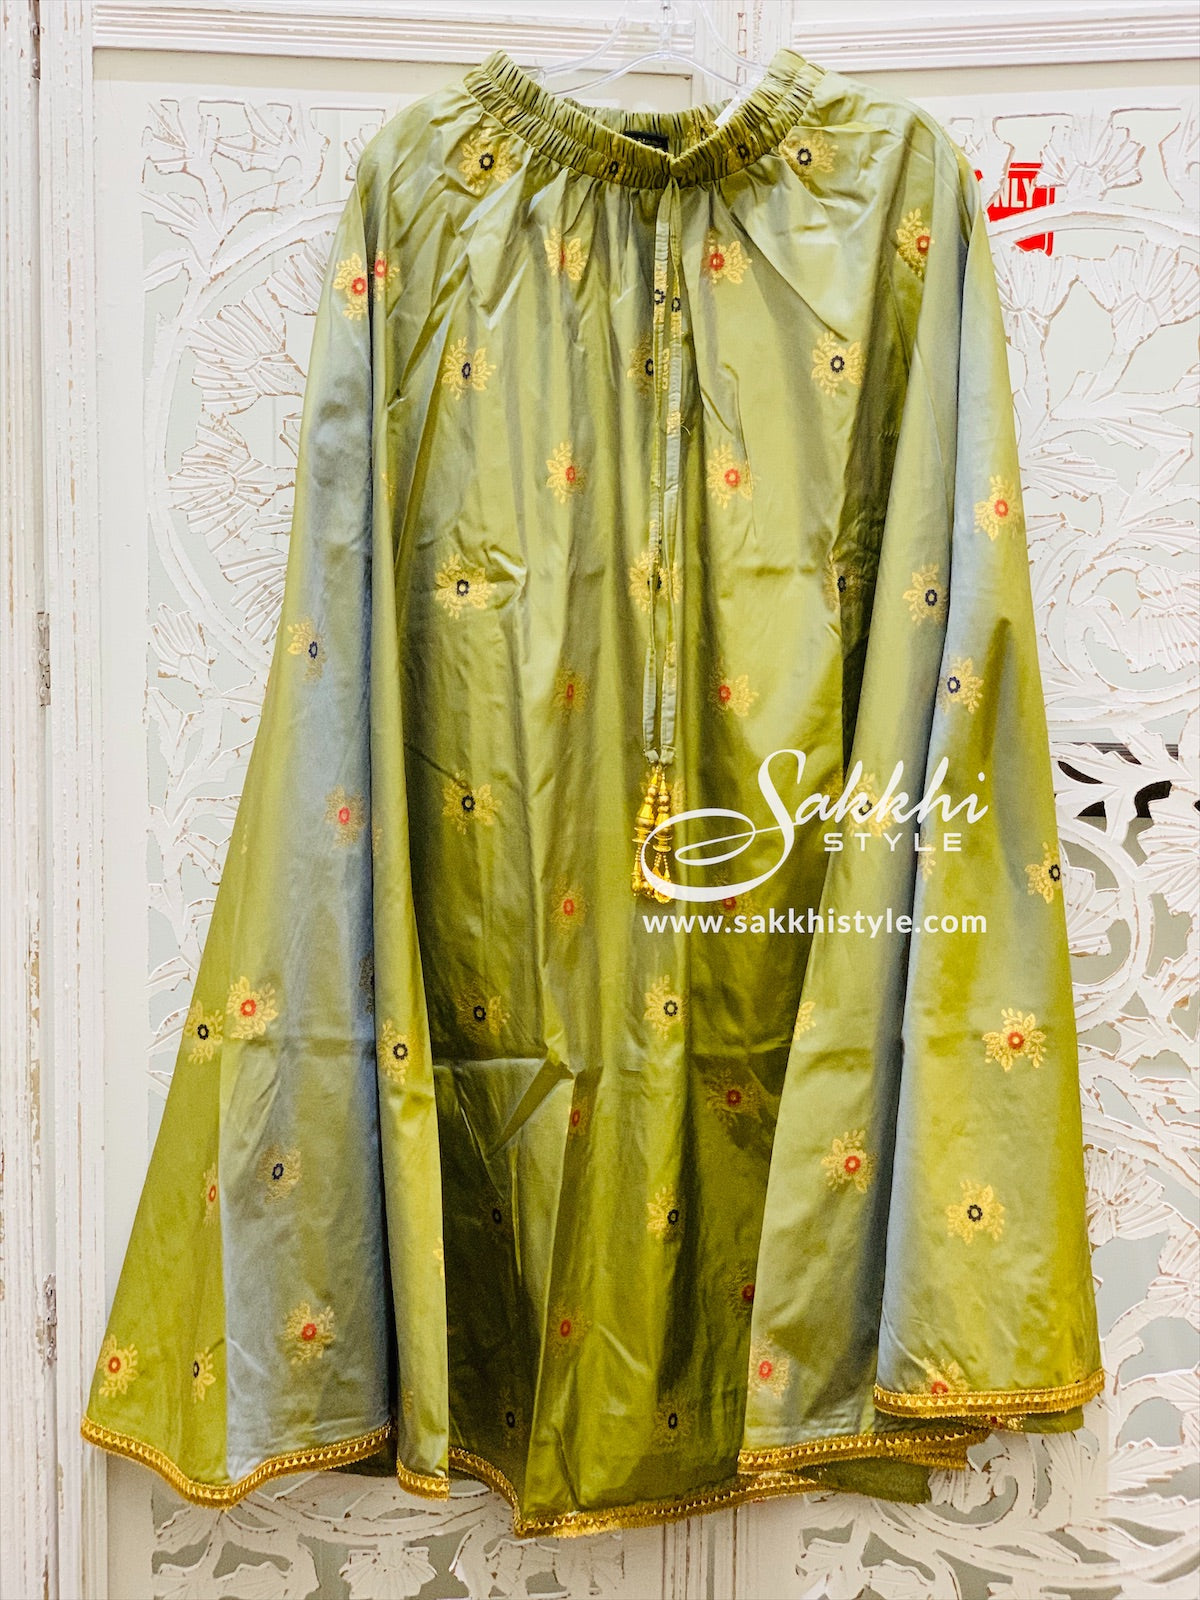 Green and Gold Skirt - Sakkhi Style